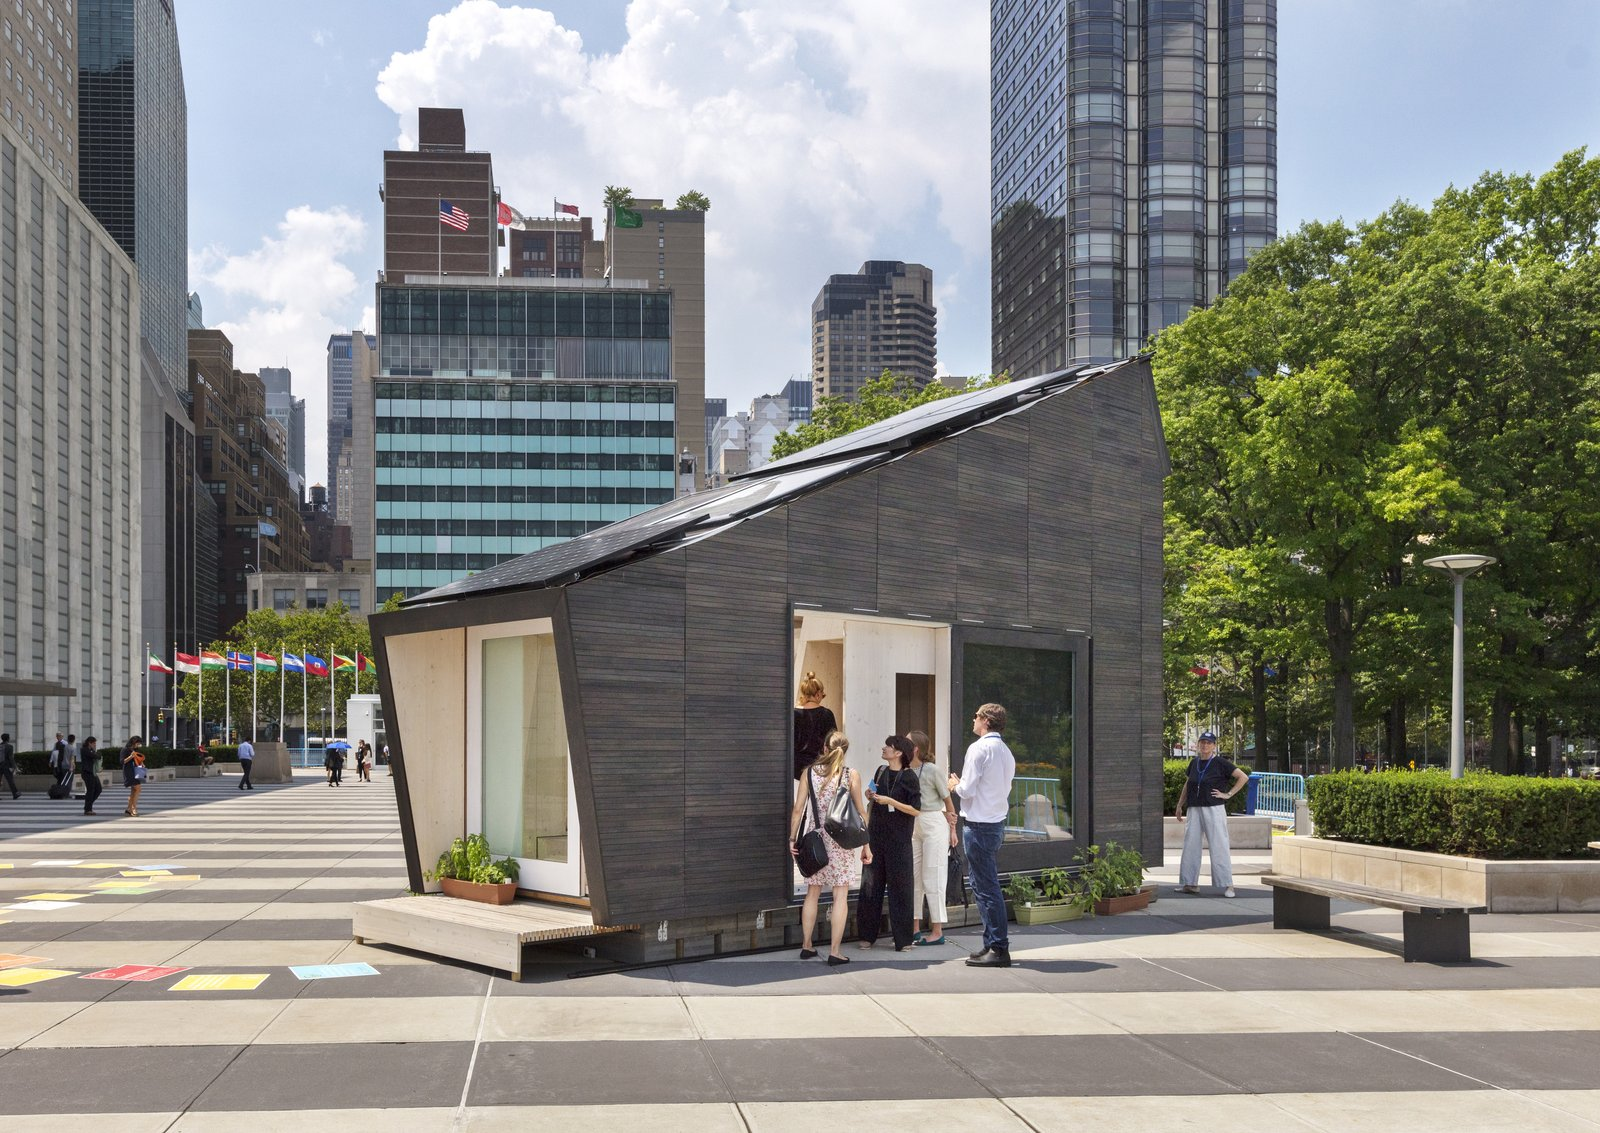 Exterior, Saltbox, Prefab, Tiny Home, and House The Ecological Living Module (ELM) was installed at the UN Headquarters in New York City for two months.  Best Exterior Prefab House Tiny Home Photos from This Tiny, Off-Grid Prefab Home Grows its Own Food